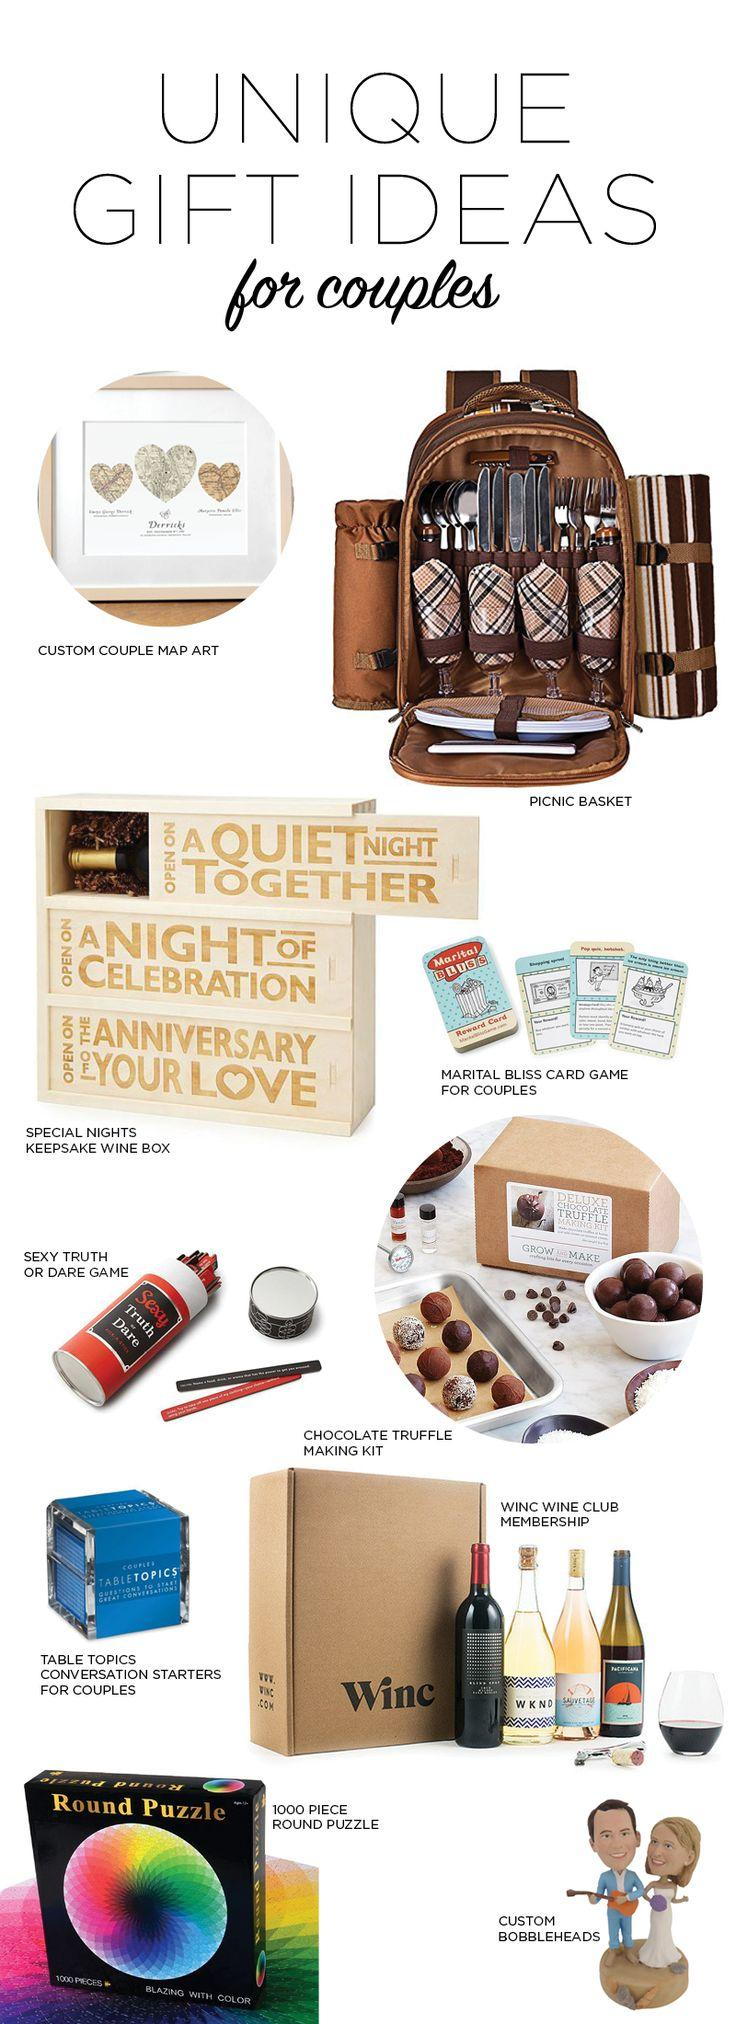 Wedding - Gift Ideas For Engaged Couples Or Newlyweds